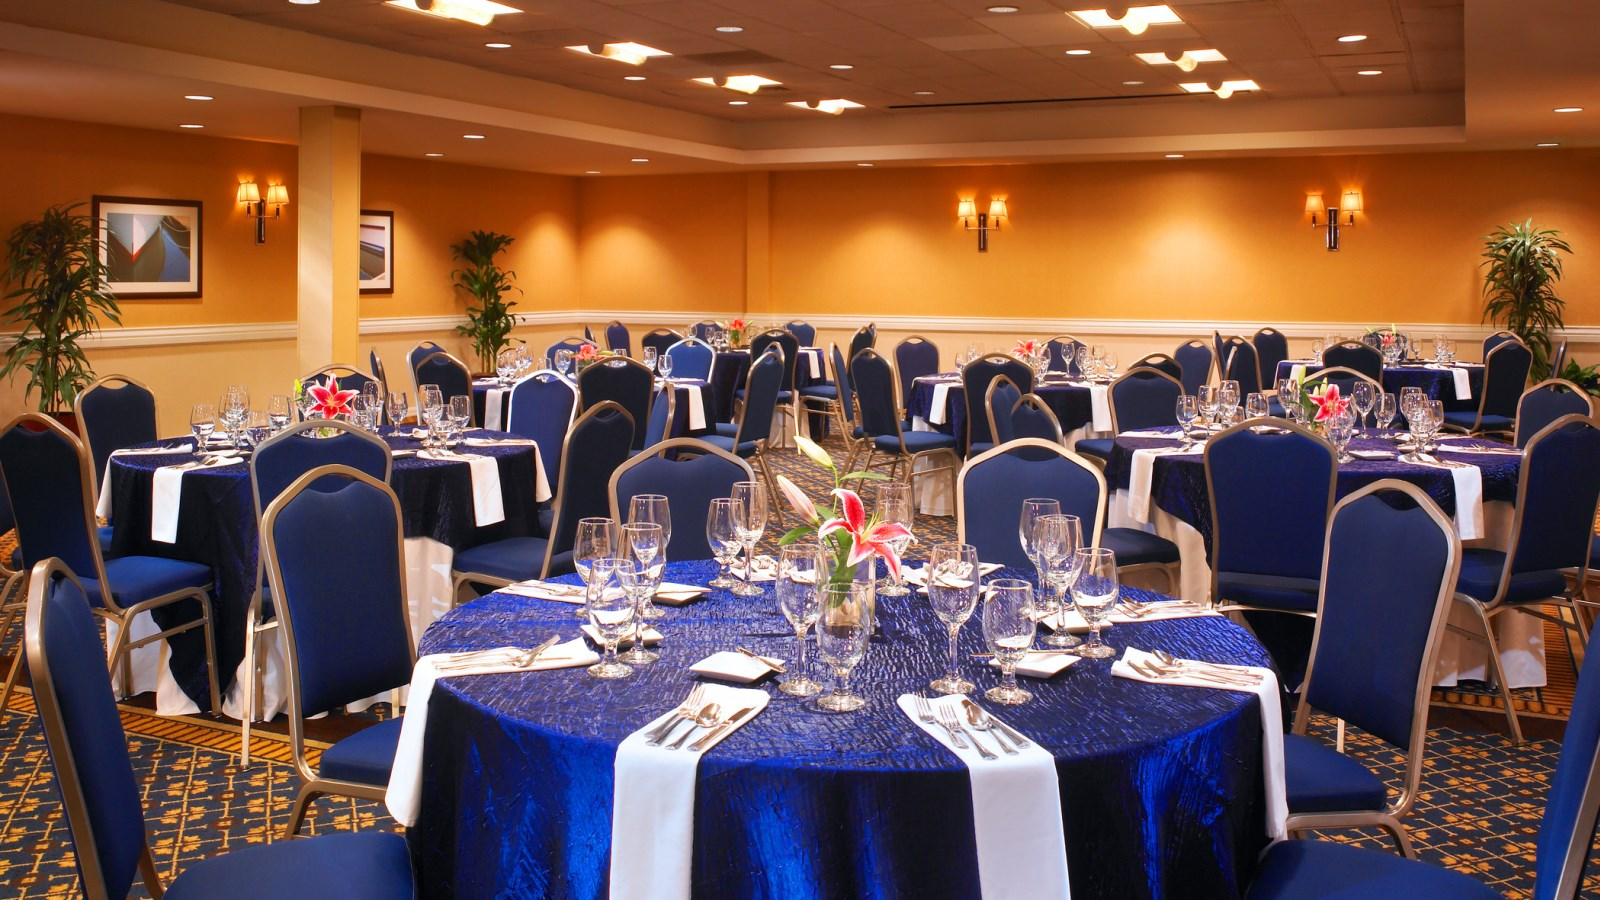 Bellevue Wedding Venue and Room Blocks - Snoqualmie Ballroom